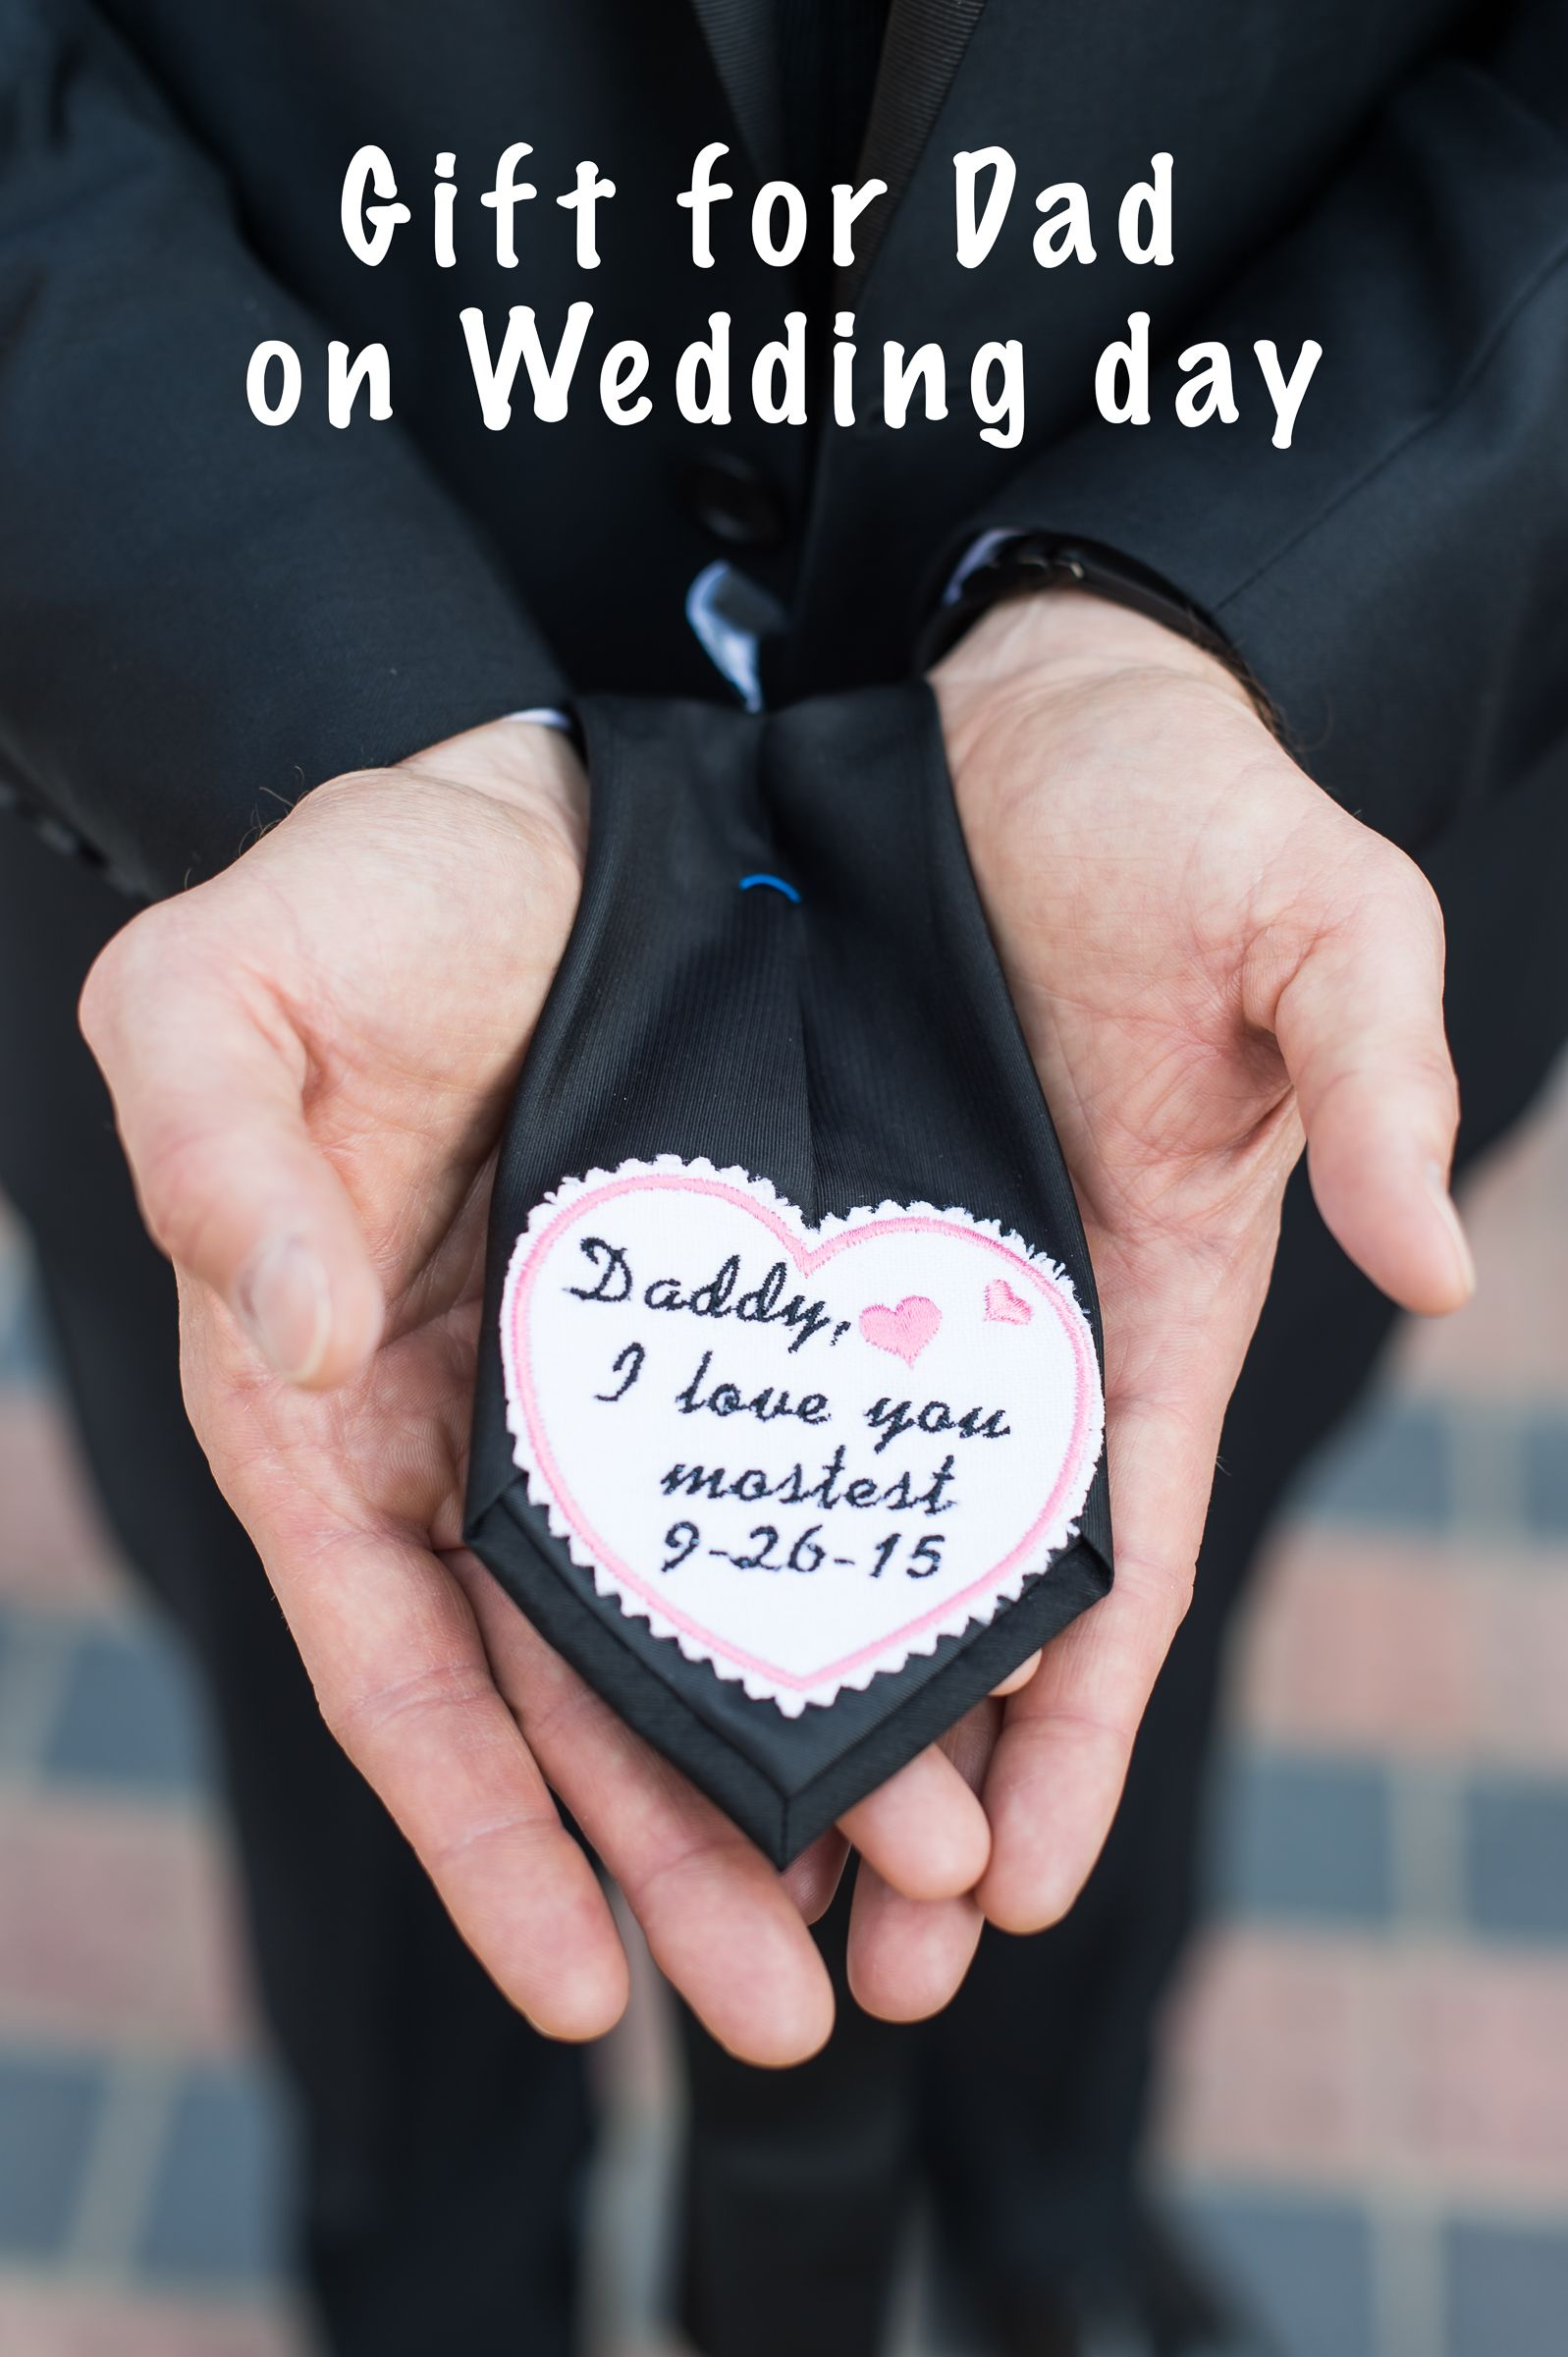 Gift for dad from daughter on wedding day wedding gifts